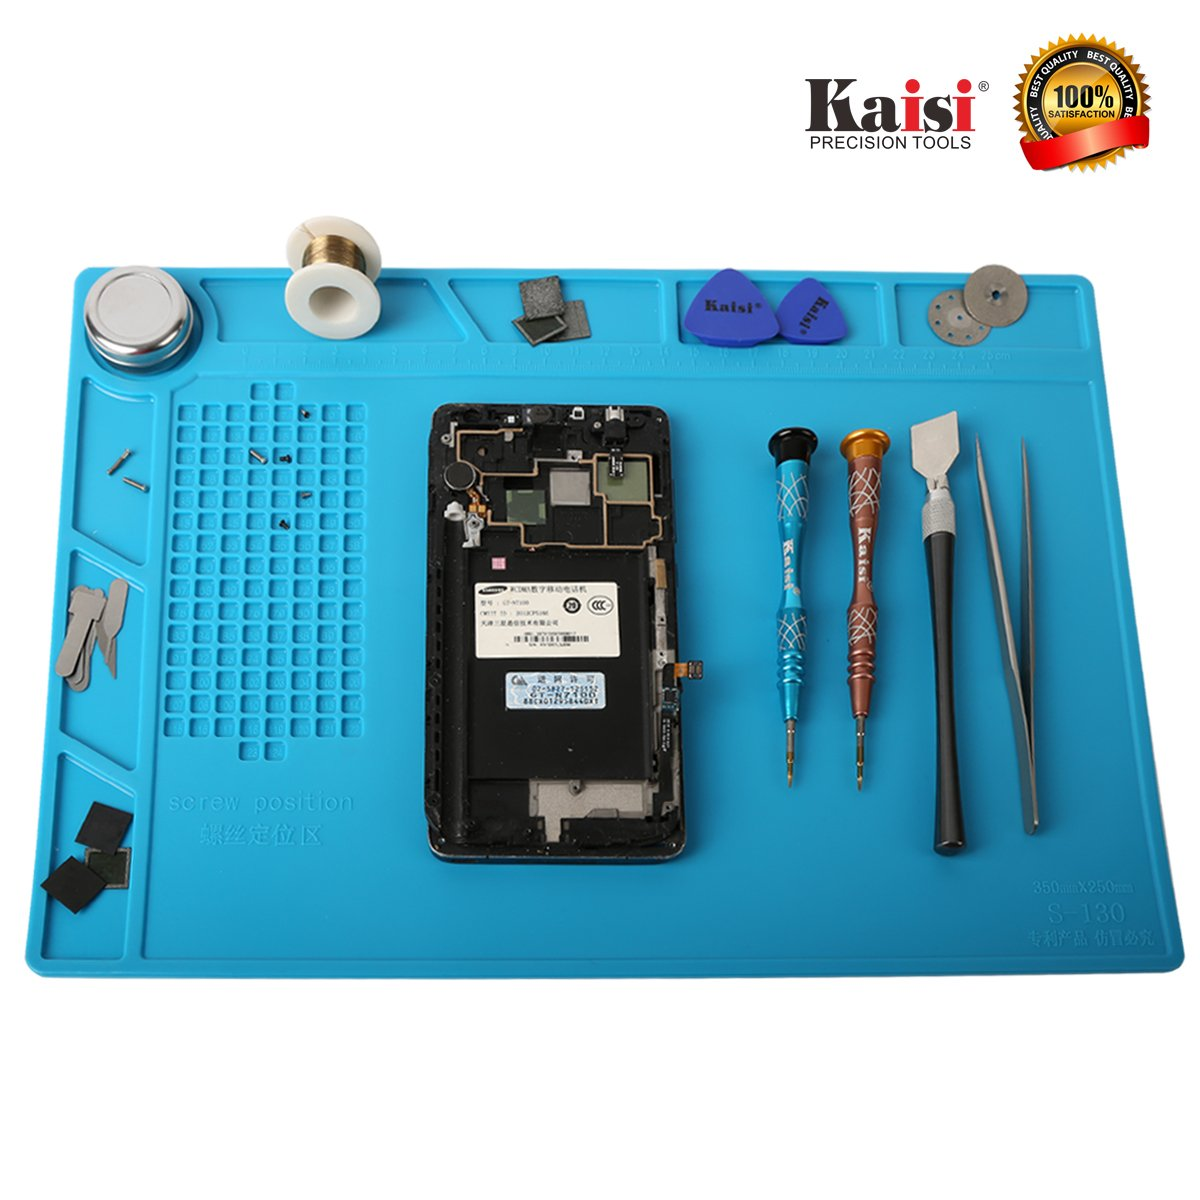 Heat Resistant Soldering Silicone Mat Repair Insulation Pad Screw Tray Maintenance Platform Work Mat Phone Repair tools for Soldering Iron Station, Phone Repair Computer Repair Watch Repair by Kaisiking (Image #2)